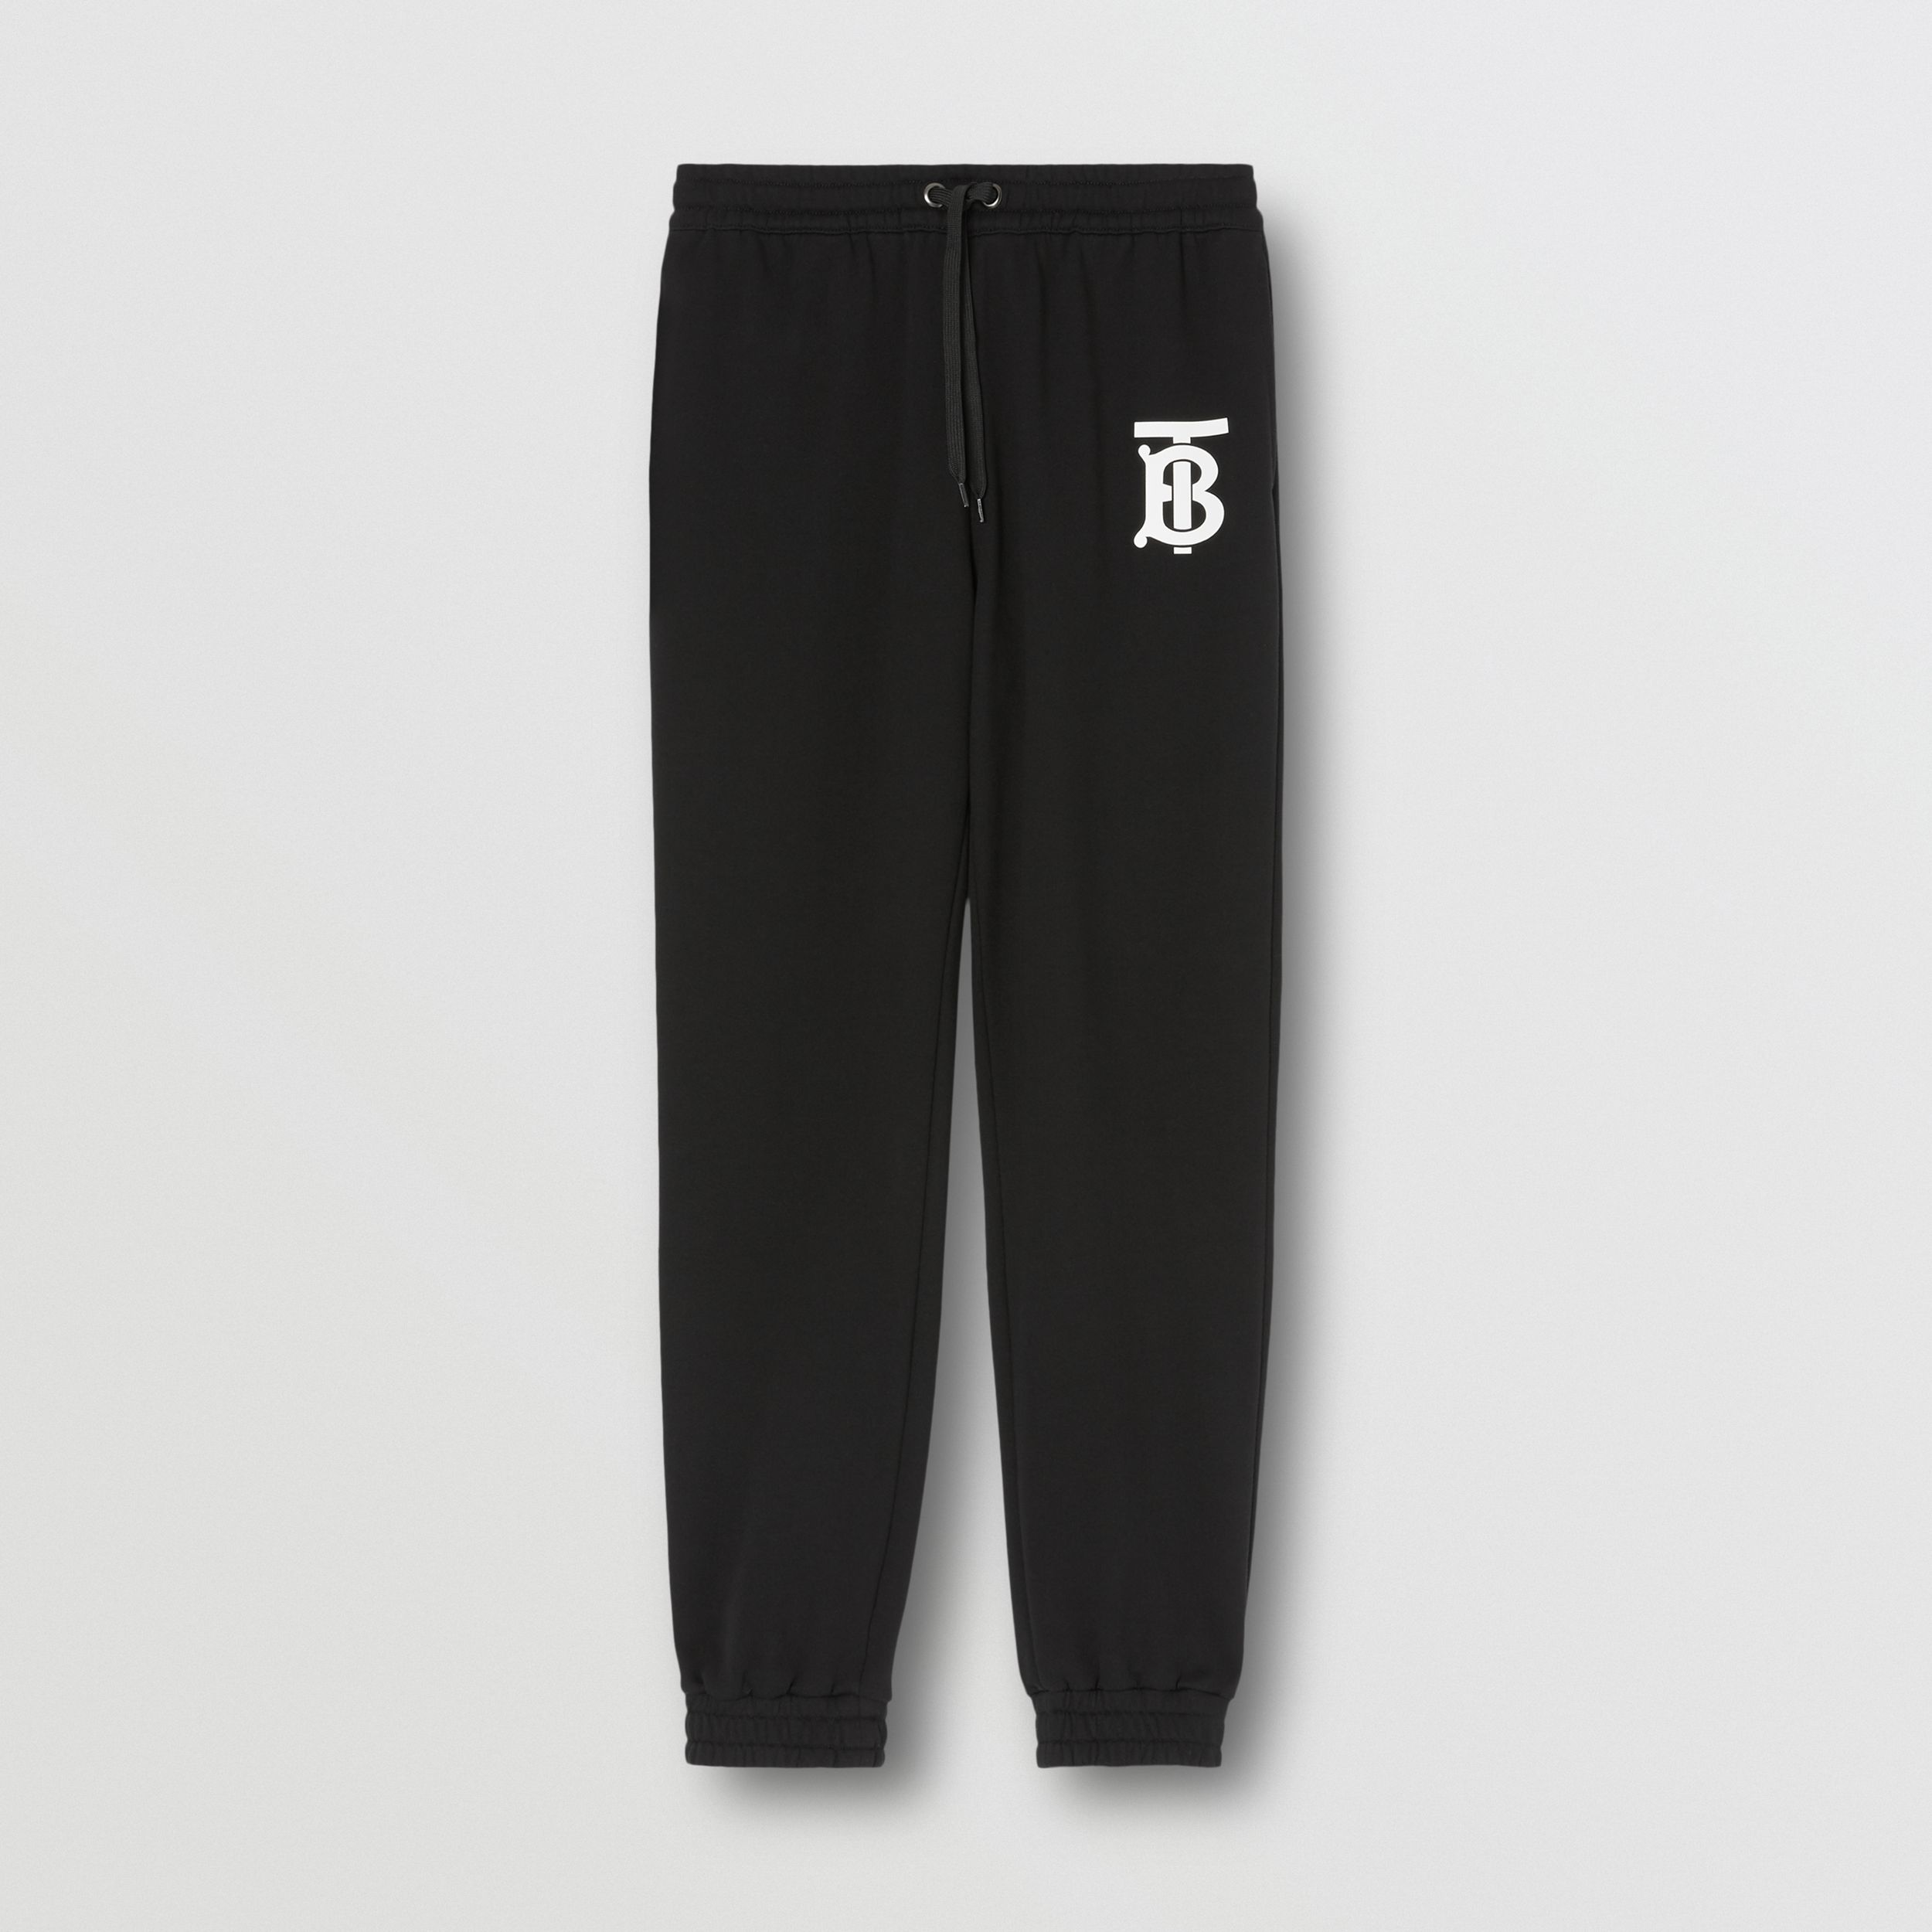 Monogram Motif Cotton Jogging Pants in Black - Men | Burberry Canada - 4